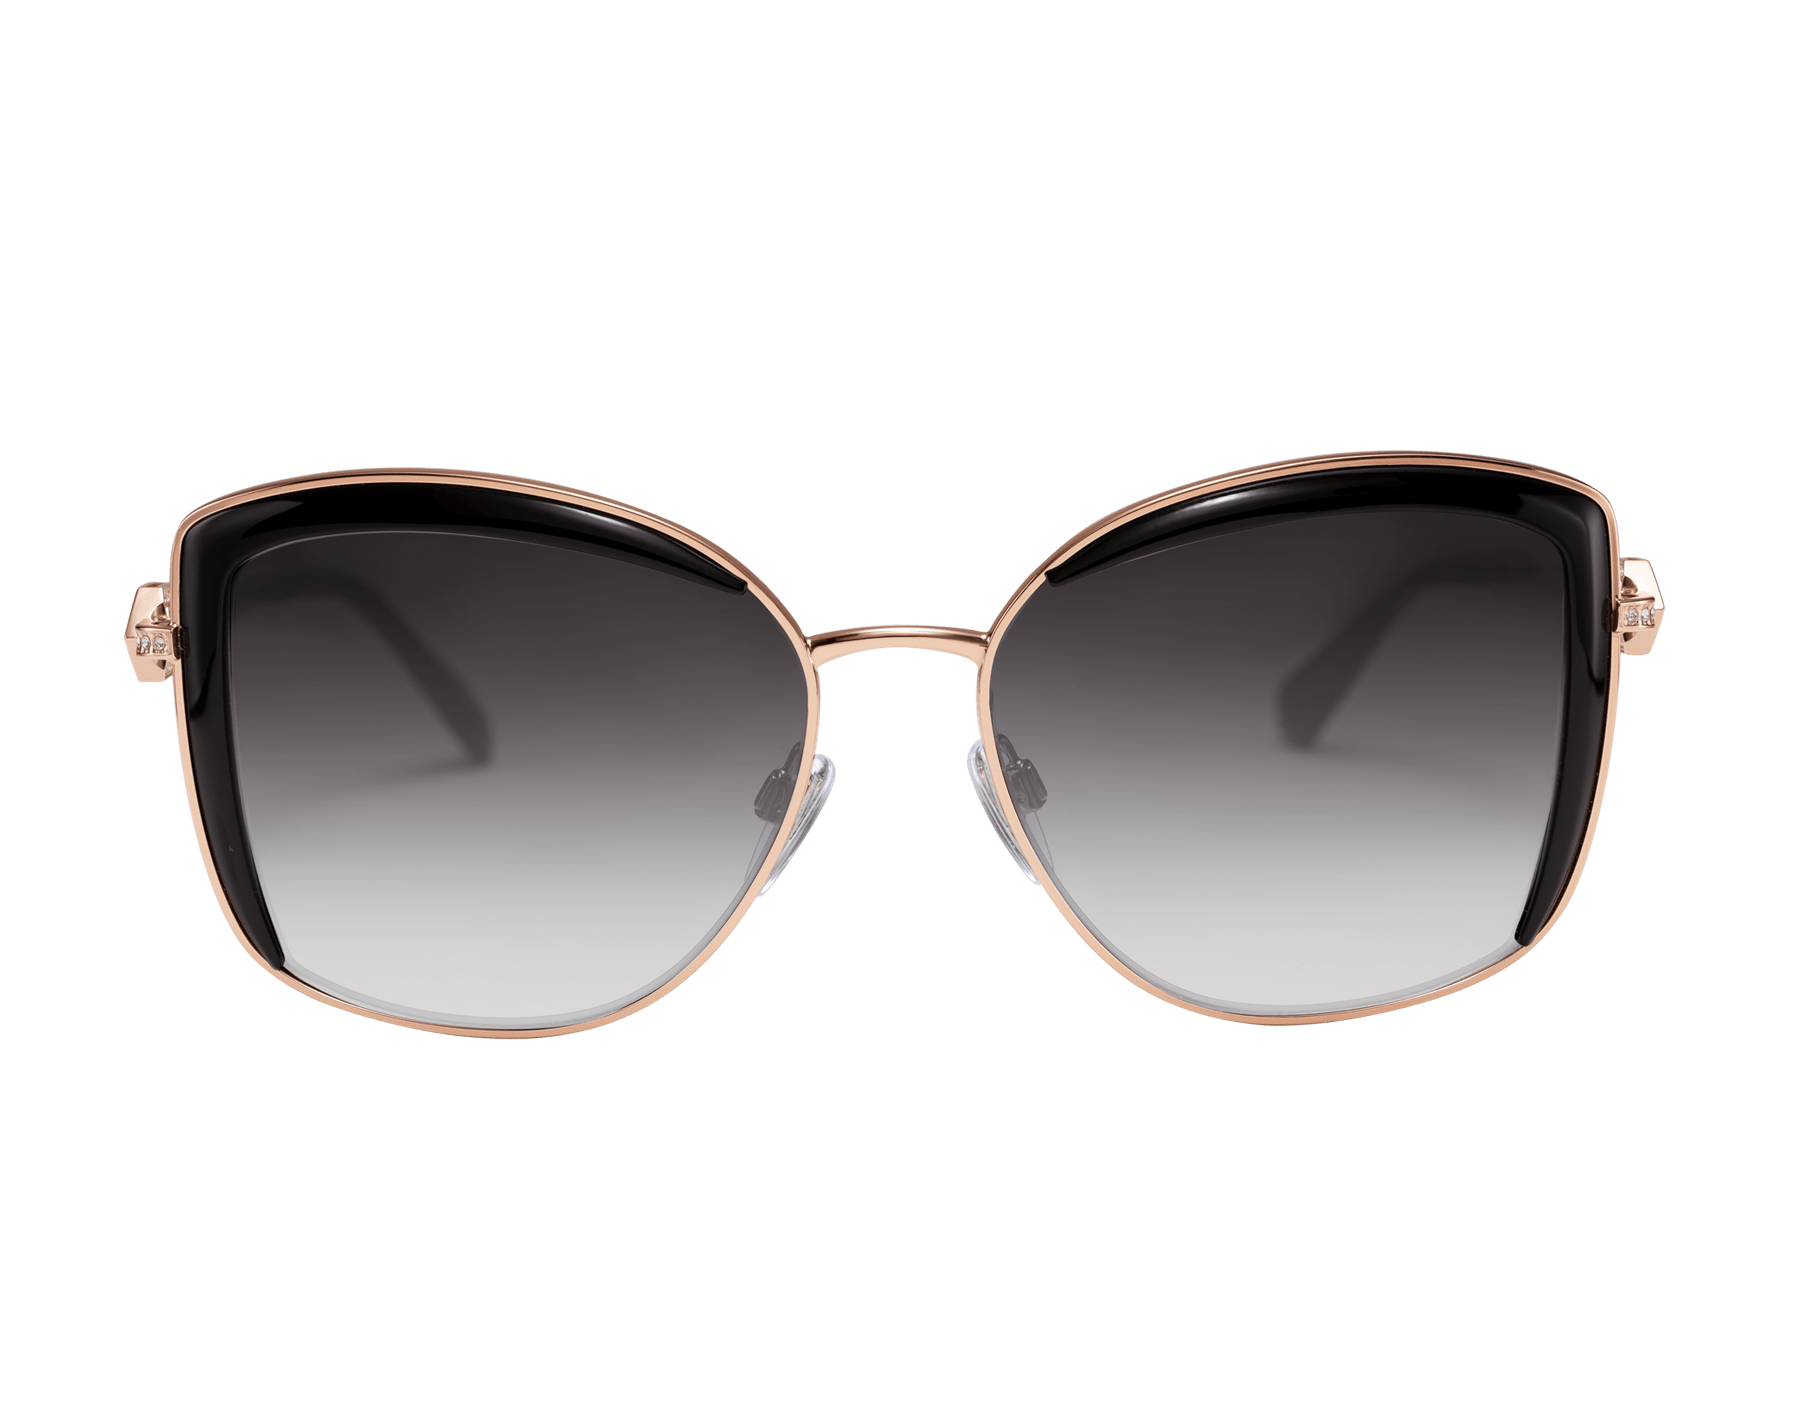 Bulgari Serpenti squared metal sunglasses with Serpenti openwork metal décor with crystals. 903903 image 2